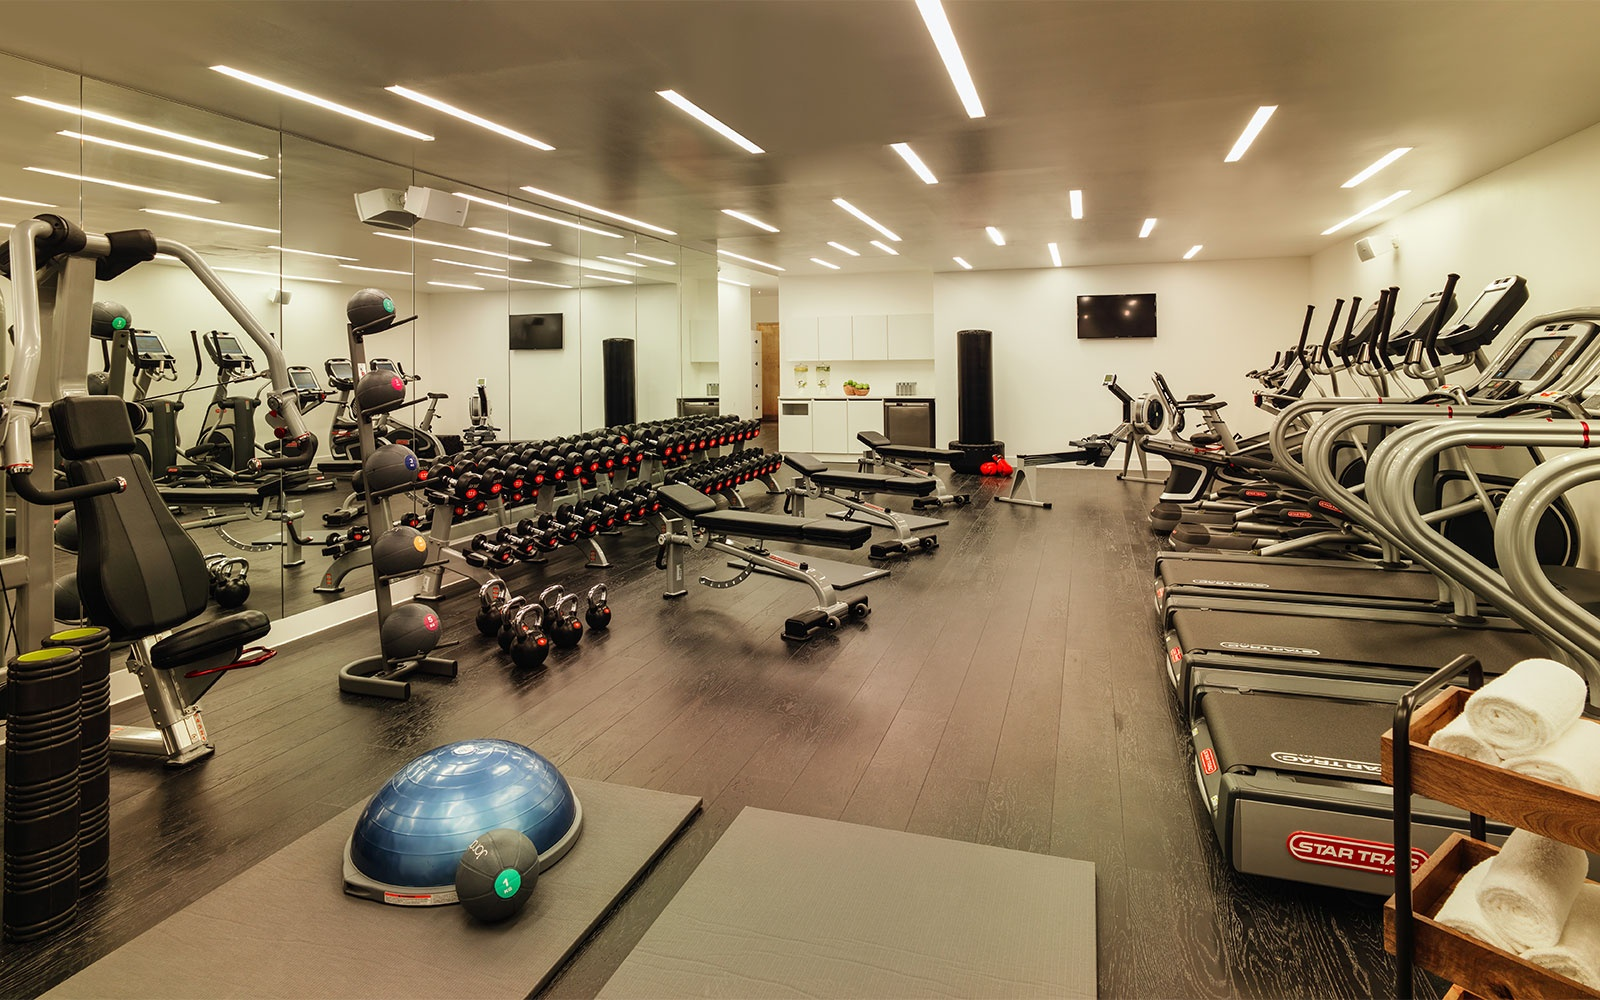 Hotel gyms in london that warrant their own visit travel